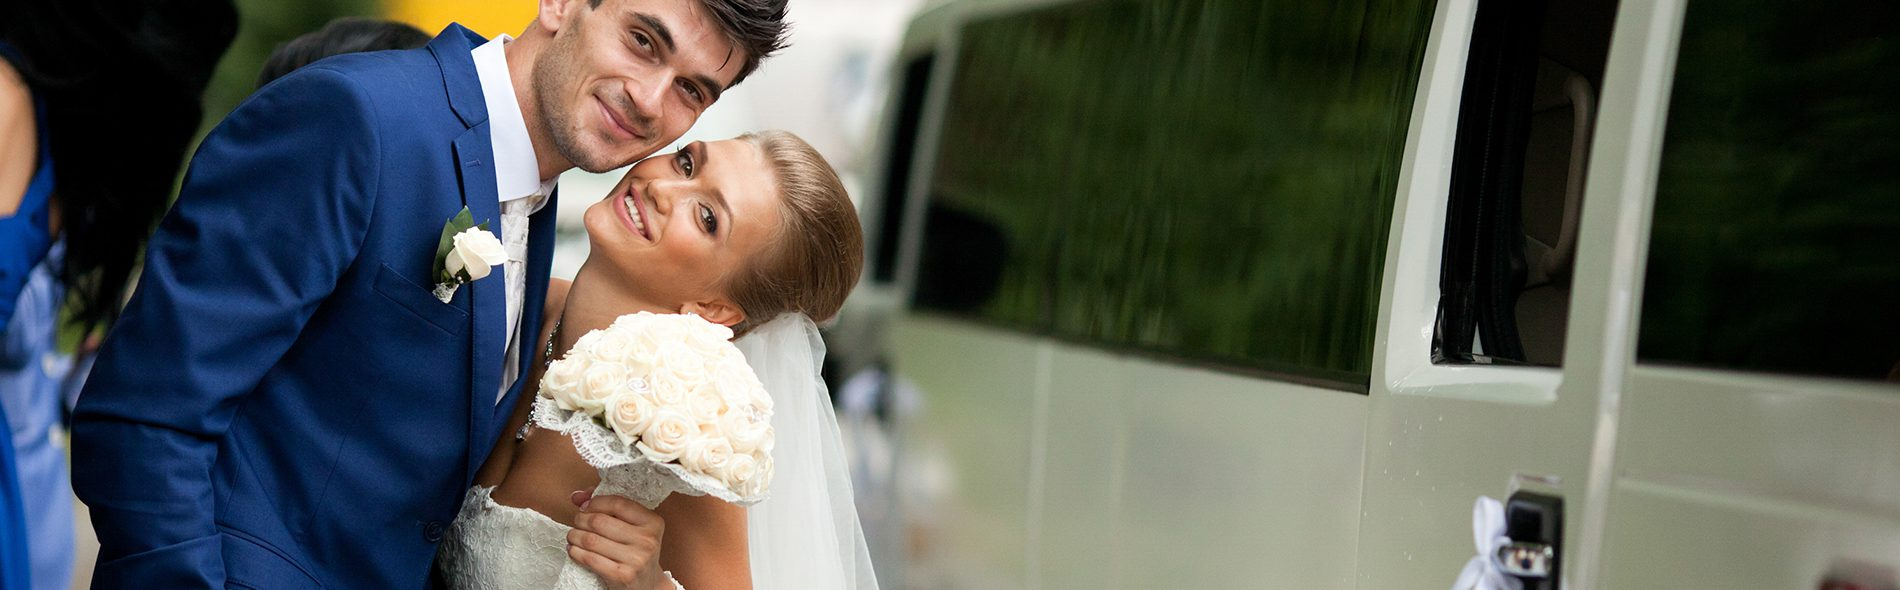 Luxury Wedding Limousine Hire Service